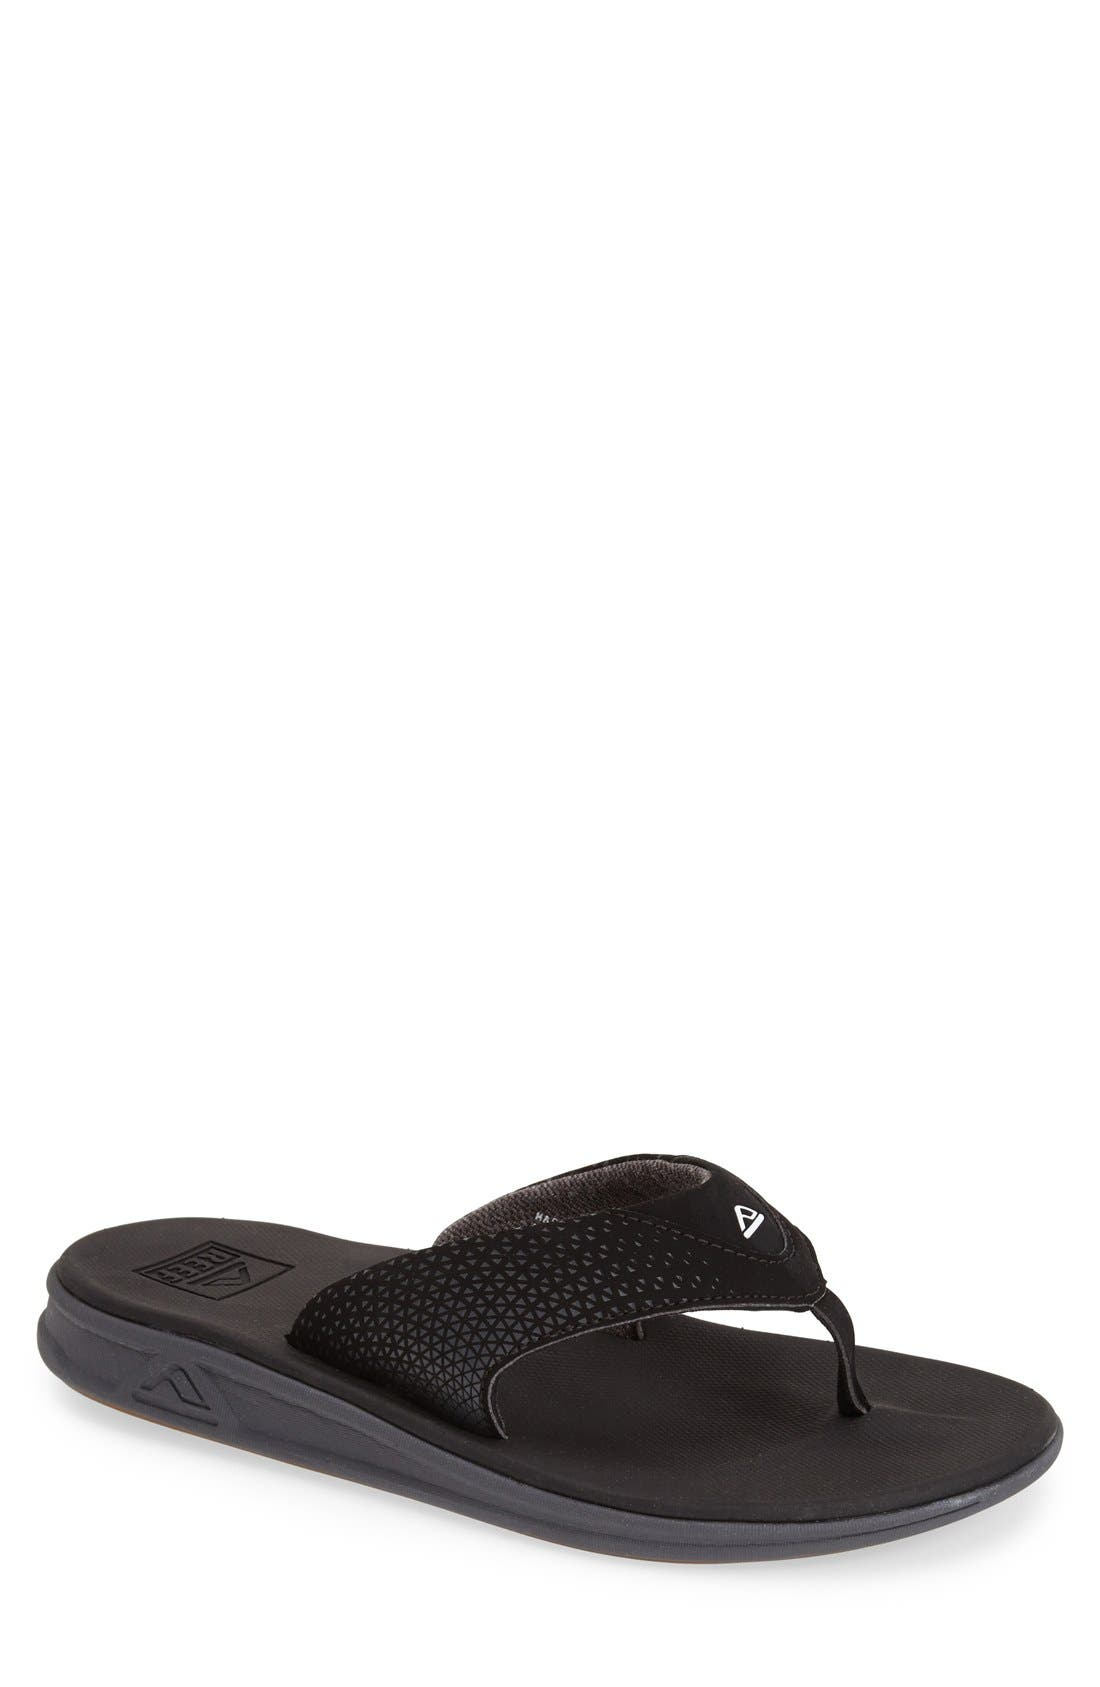 'Rover' Flip Flop,                         Main,                         color, Black